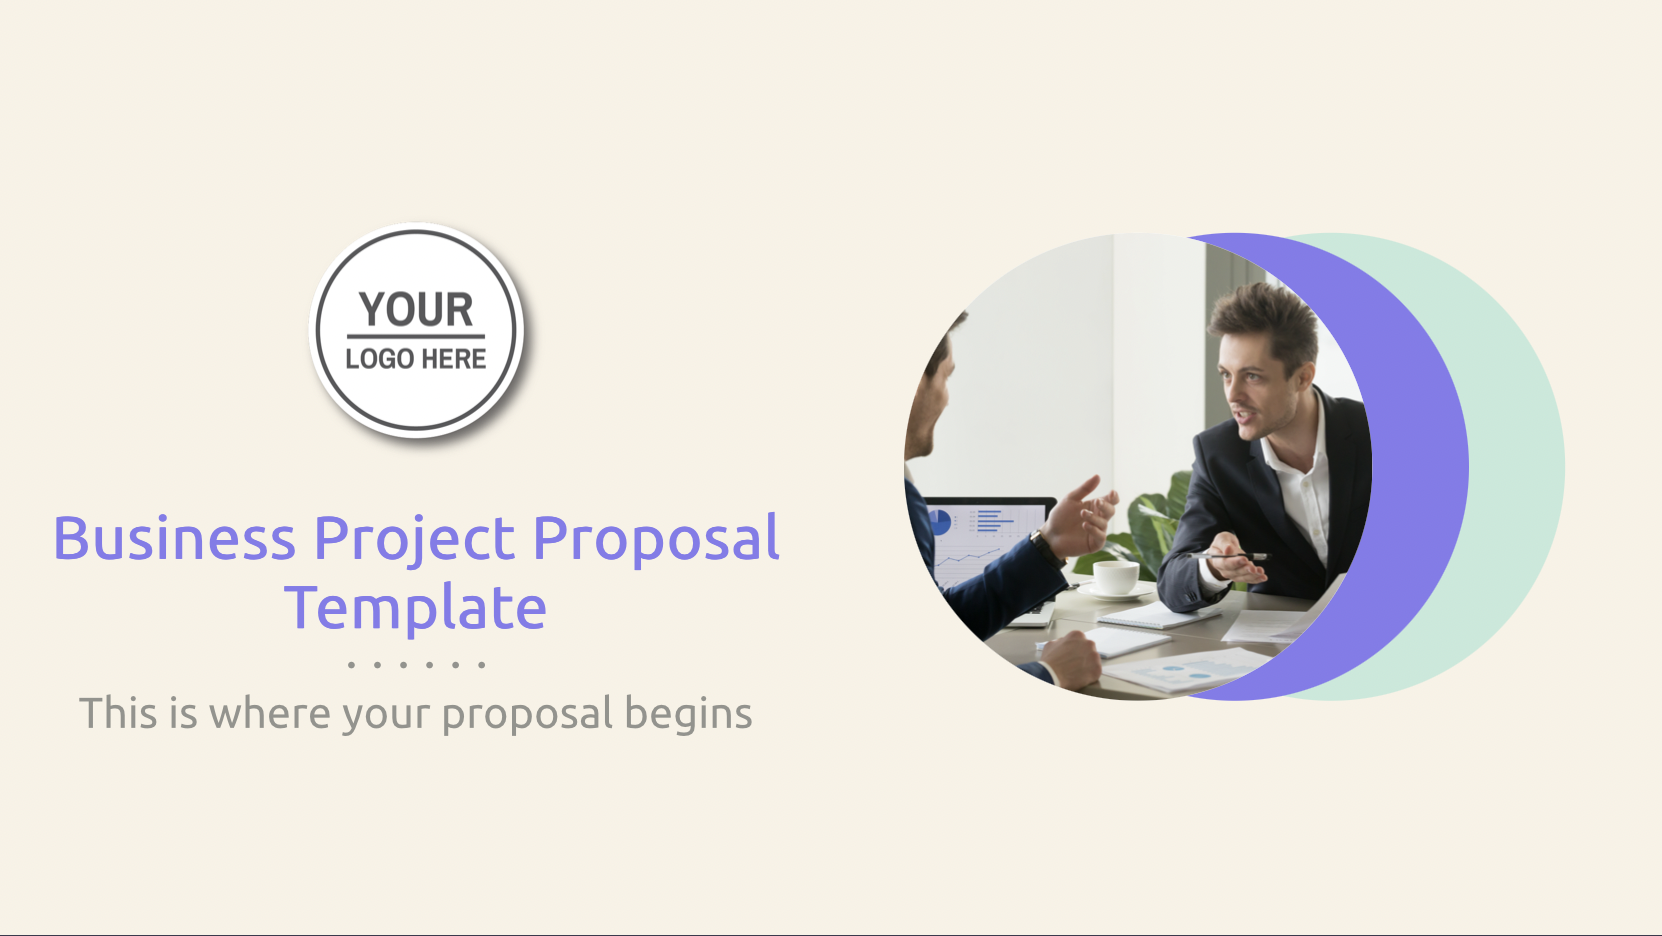 Use this business project proposal template to stand out in your project proposals and presentation on or off office. Decktopus designs will let you stand out and express your project professionally.